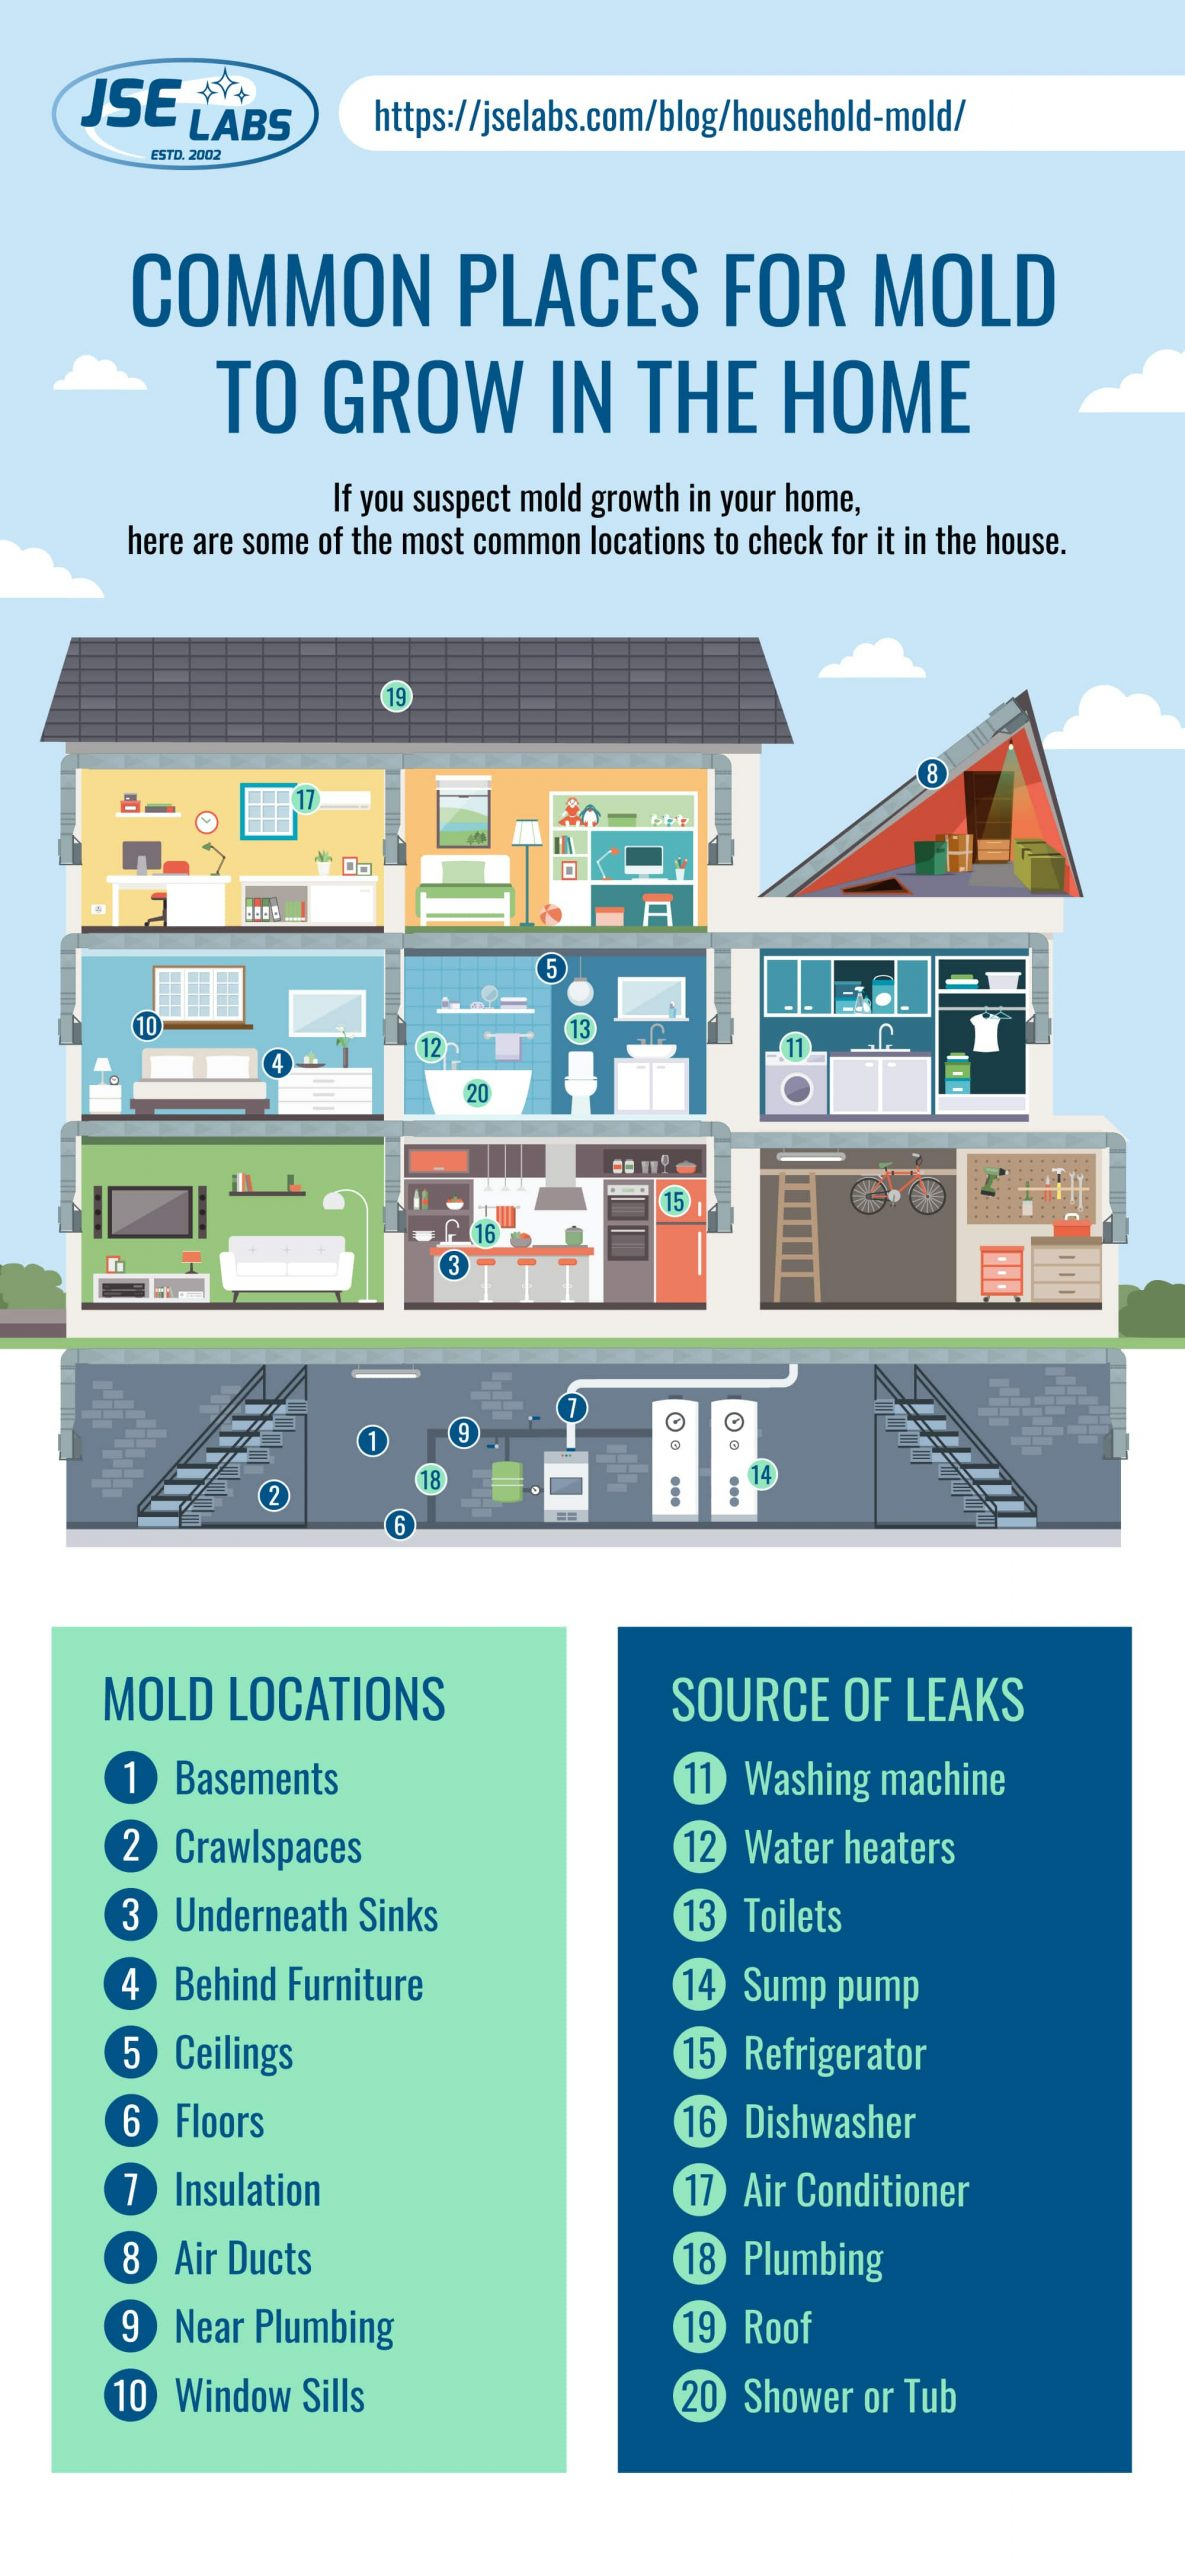 Common places for mold to grow in the home infographic with mold locations and source of home leaks